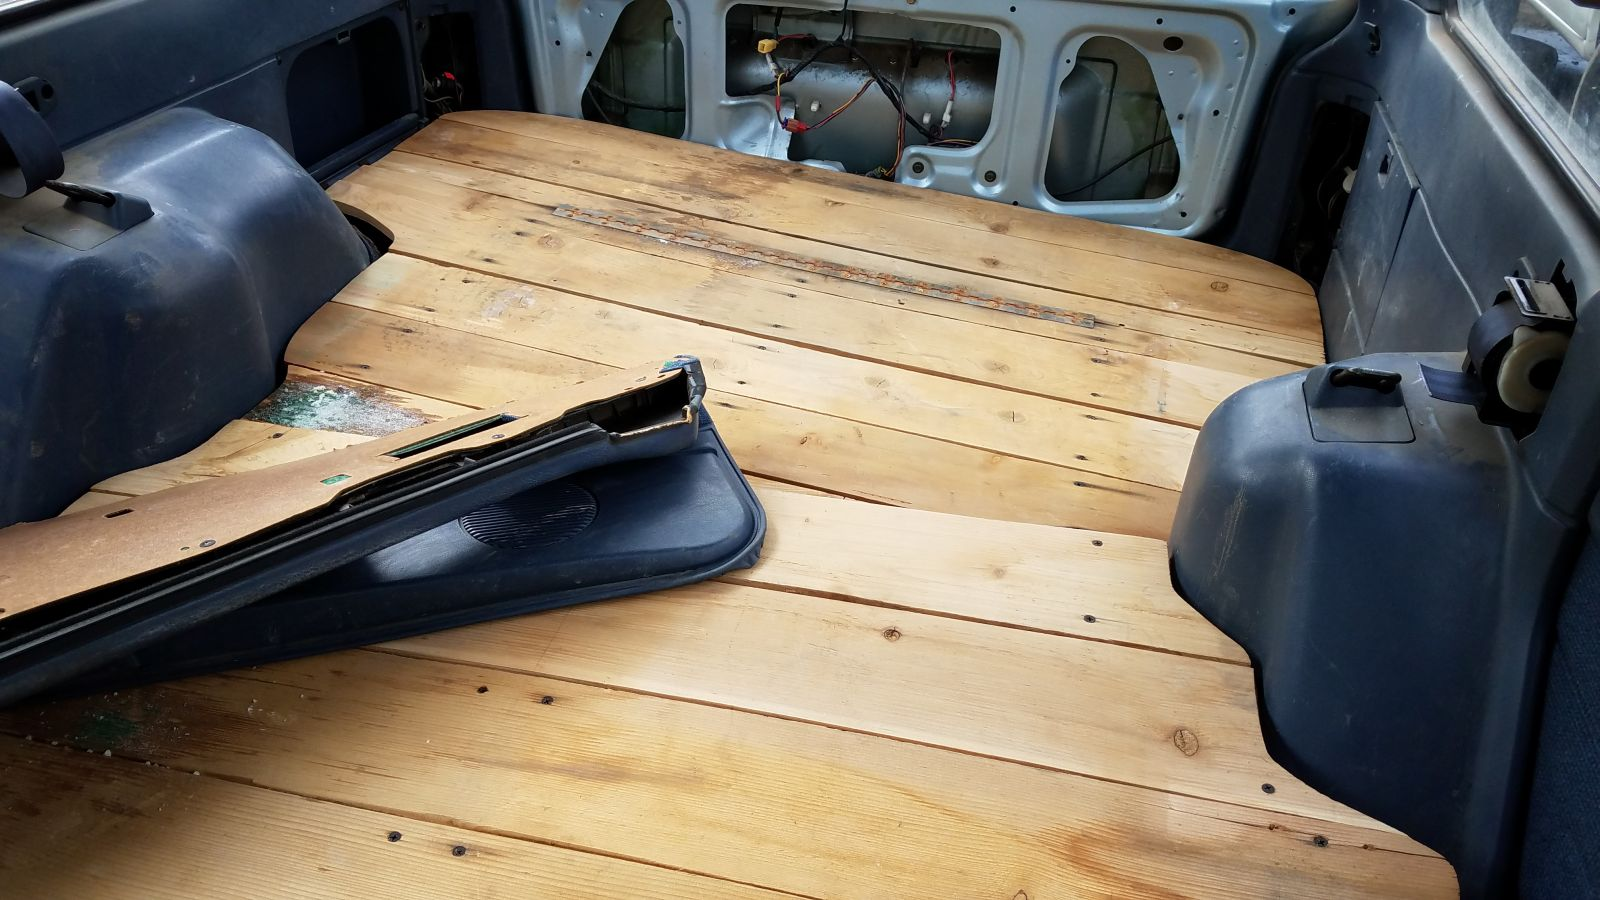 hight resolution of inside a sturdy wooden floor covers the rear seat and cargo area just the thing for lots of bicycle parts or camping gear